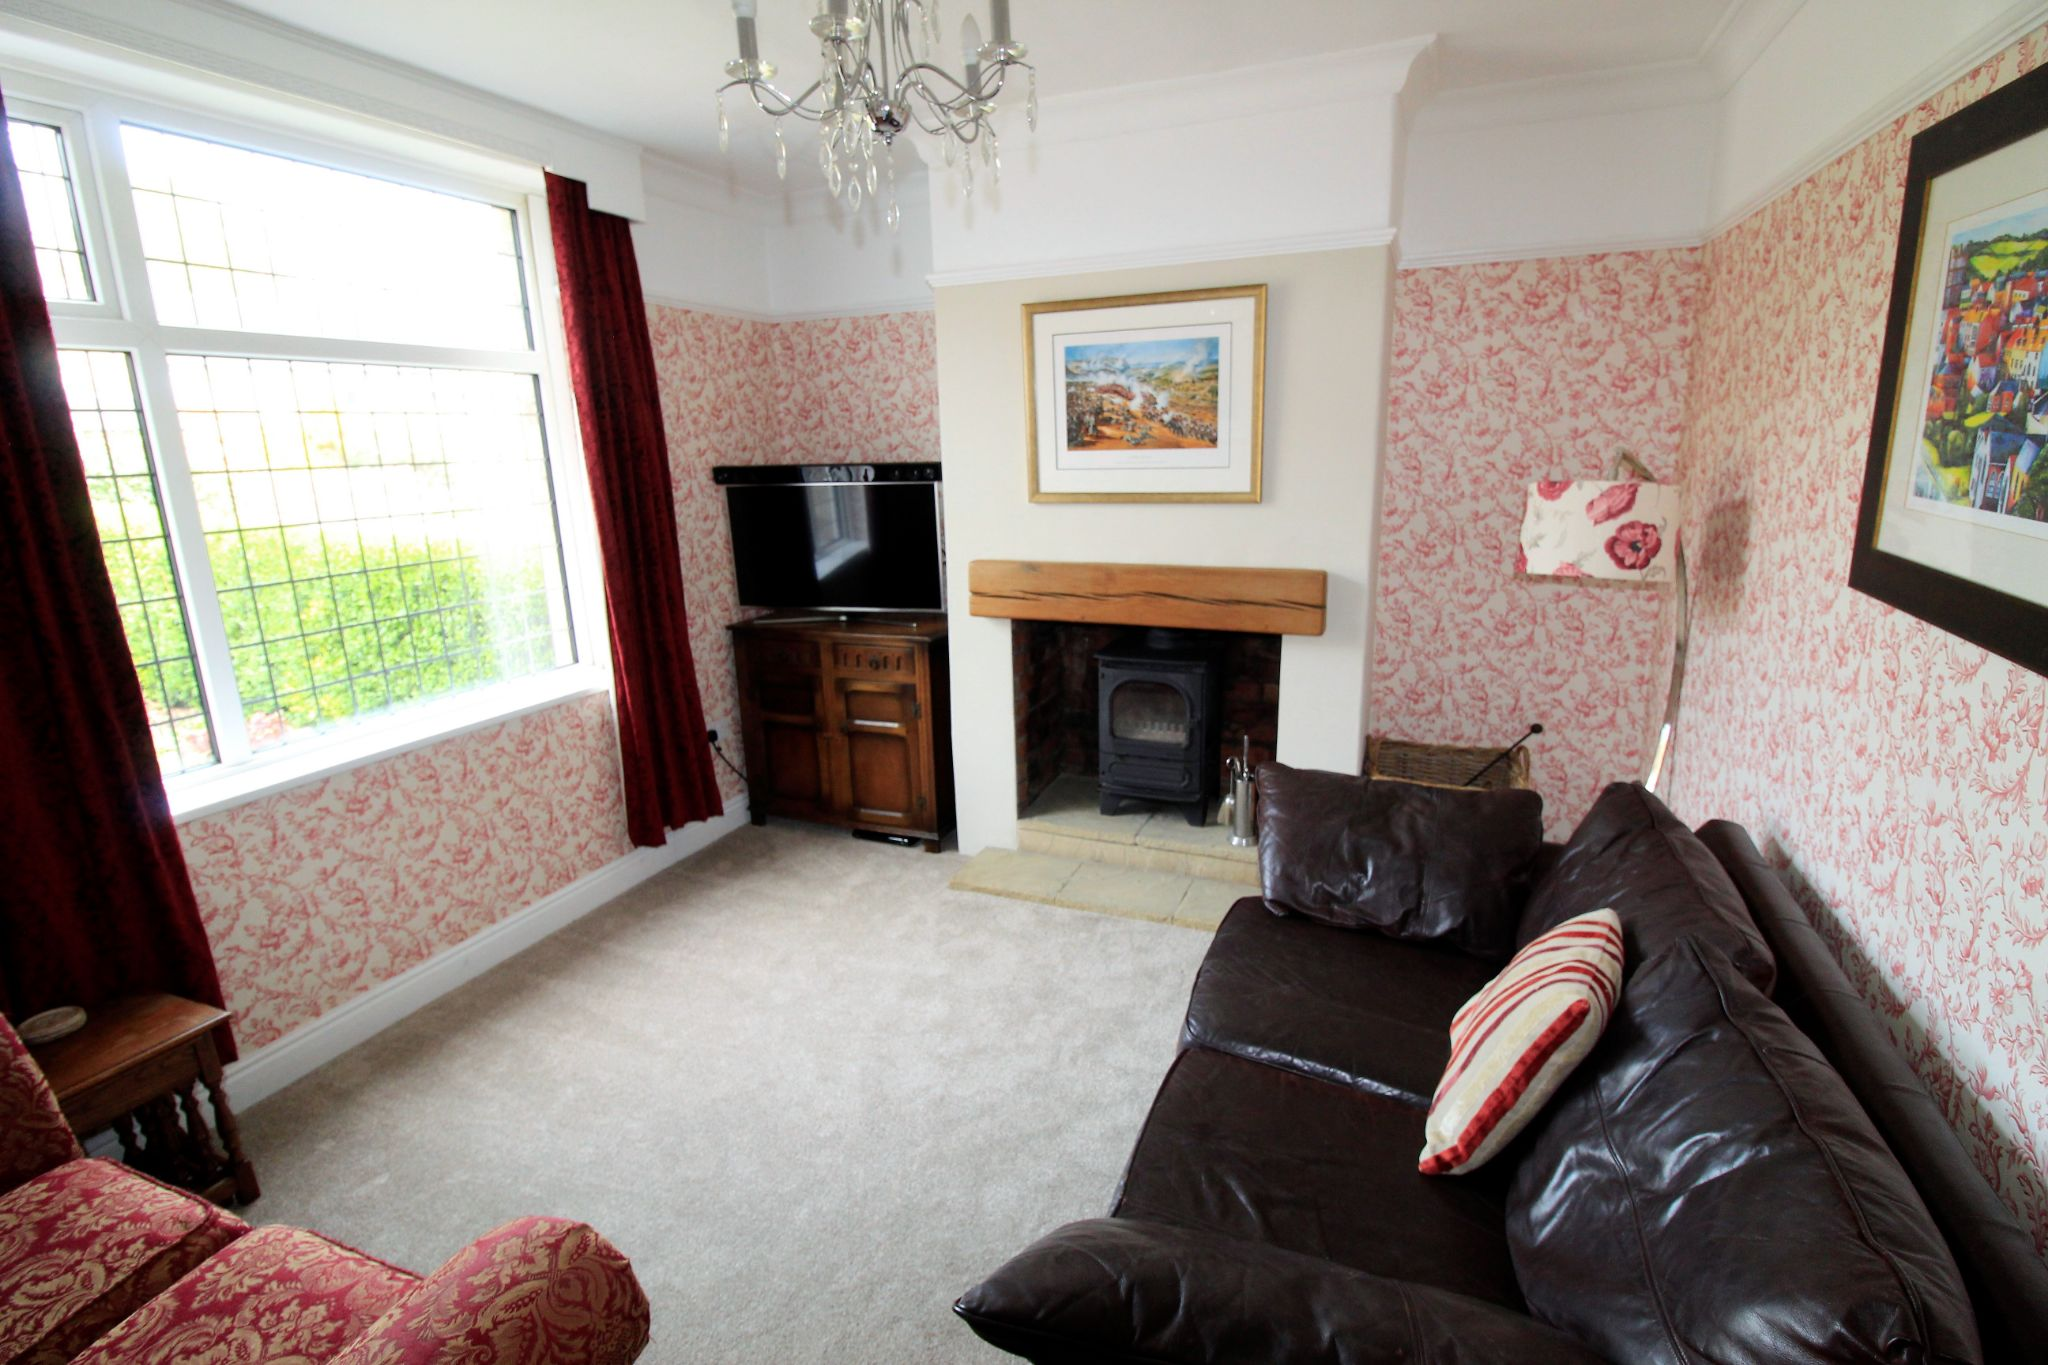 3 bedroom town house SSTC in Halifax - Photograph 8